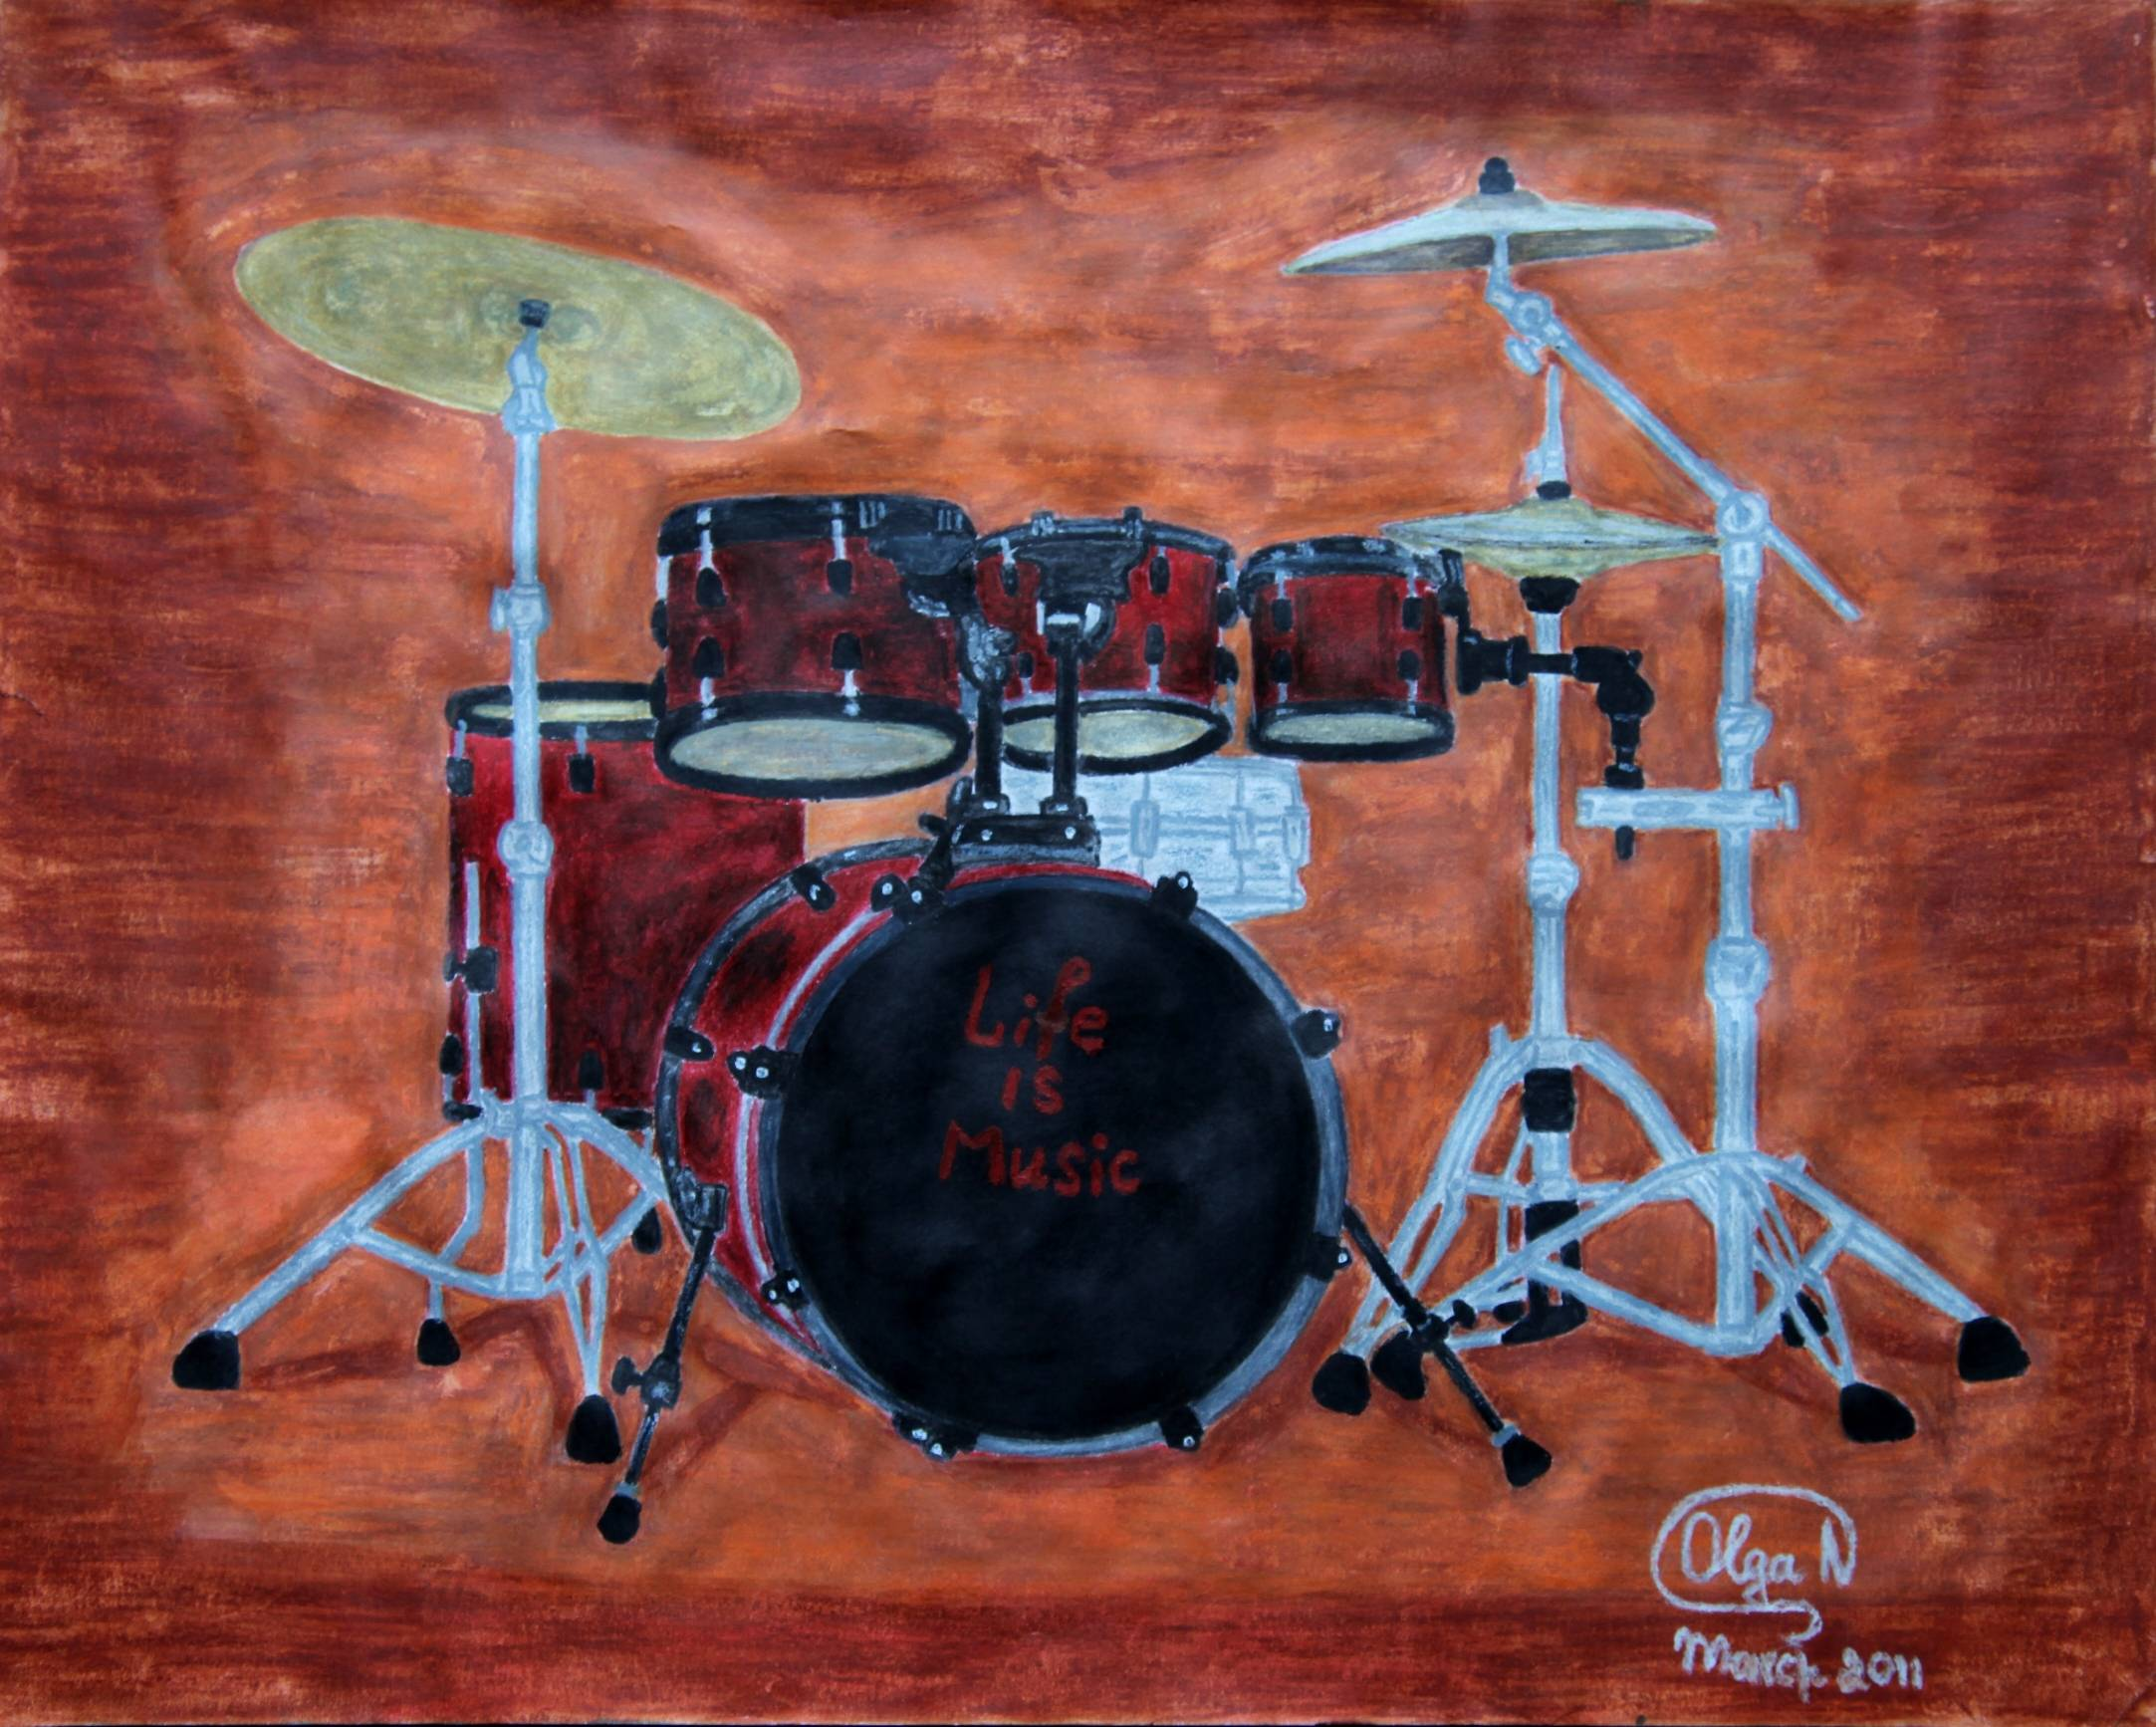 Life Is Music - Drums